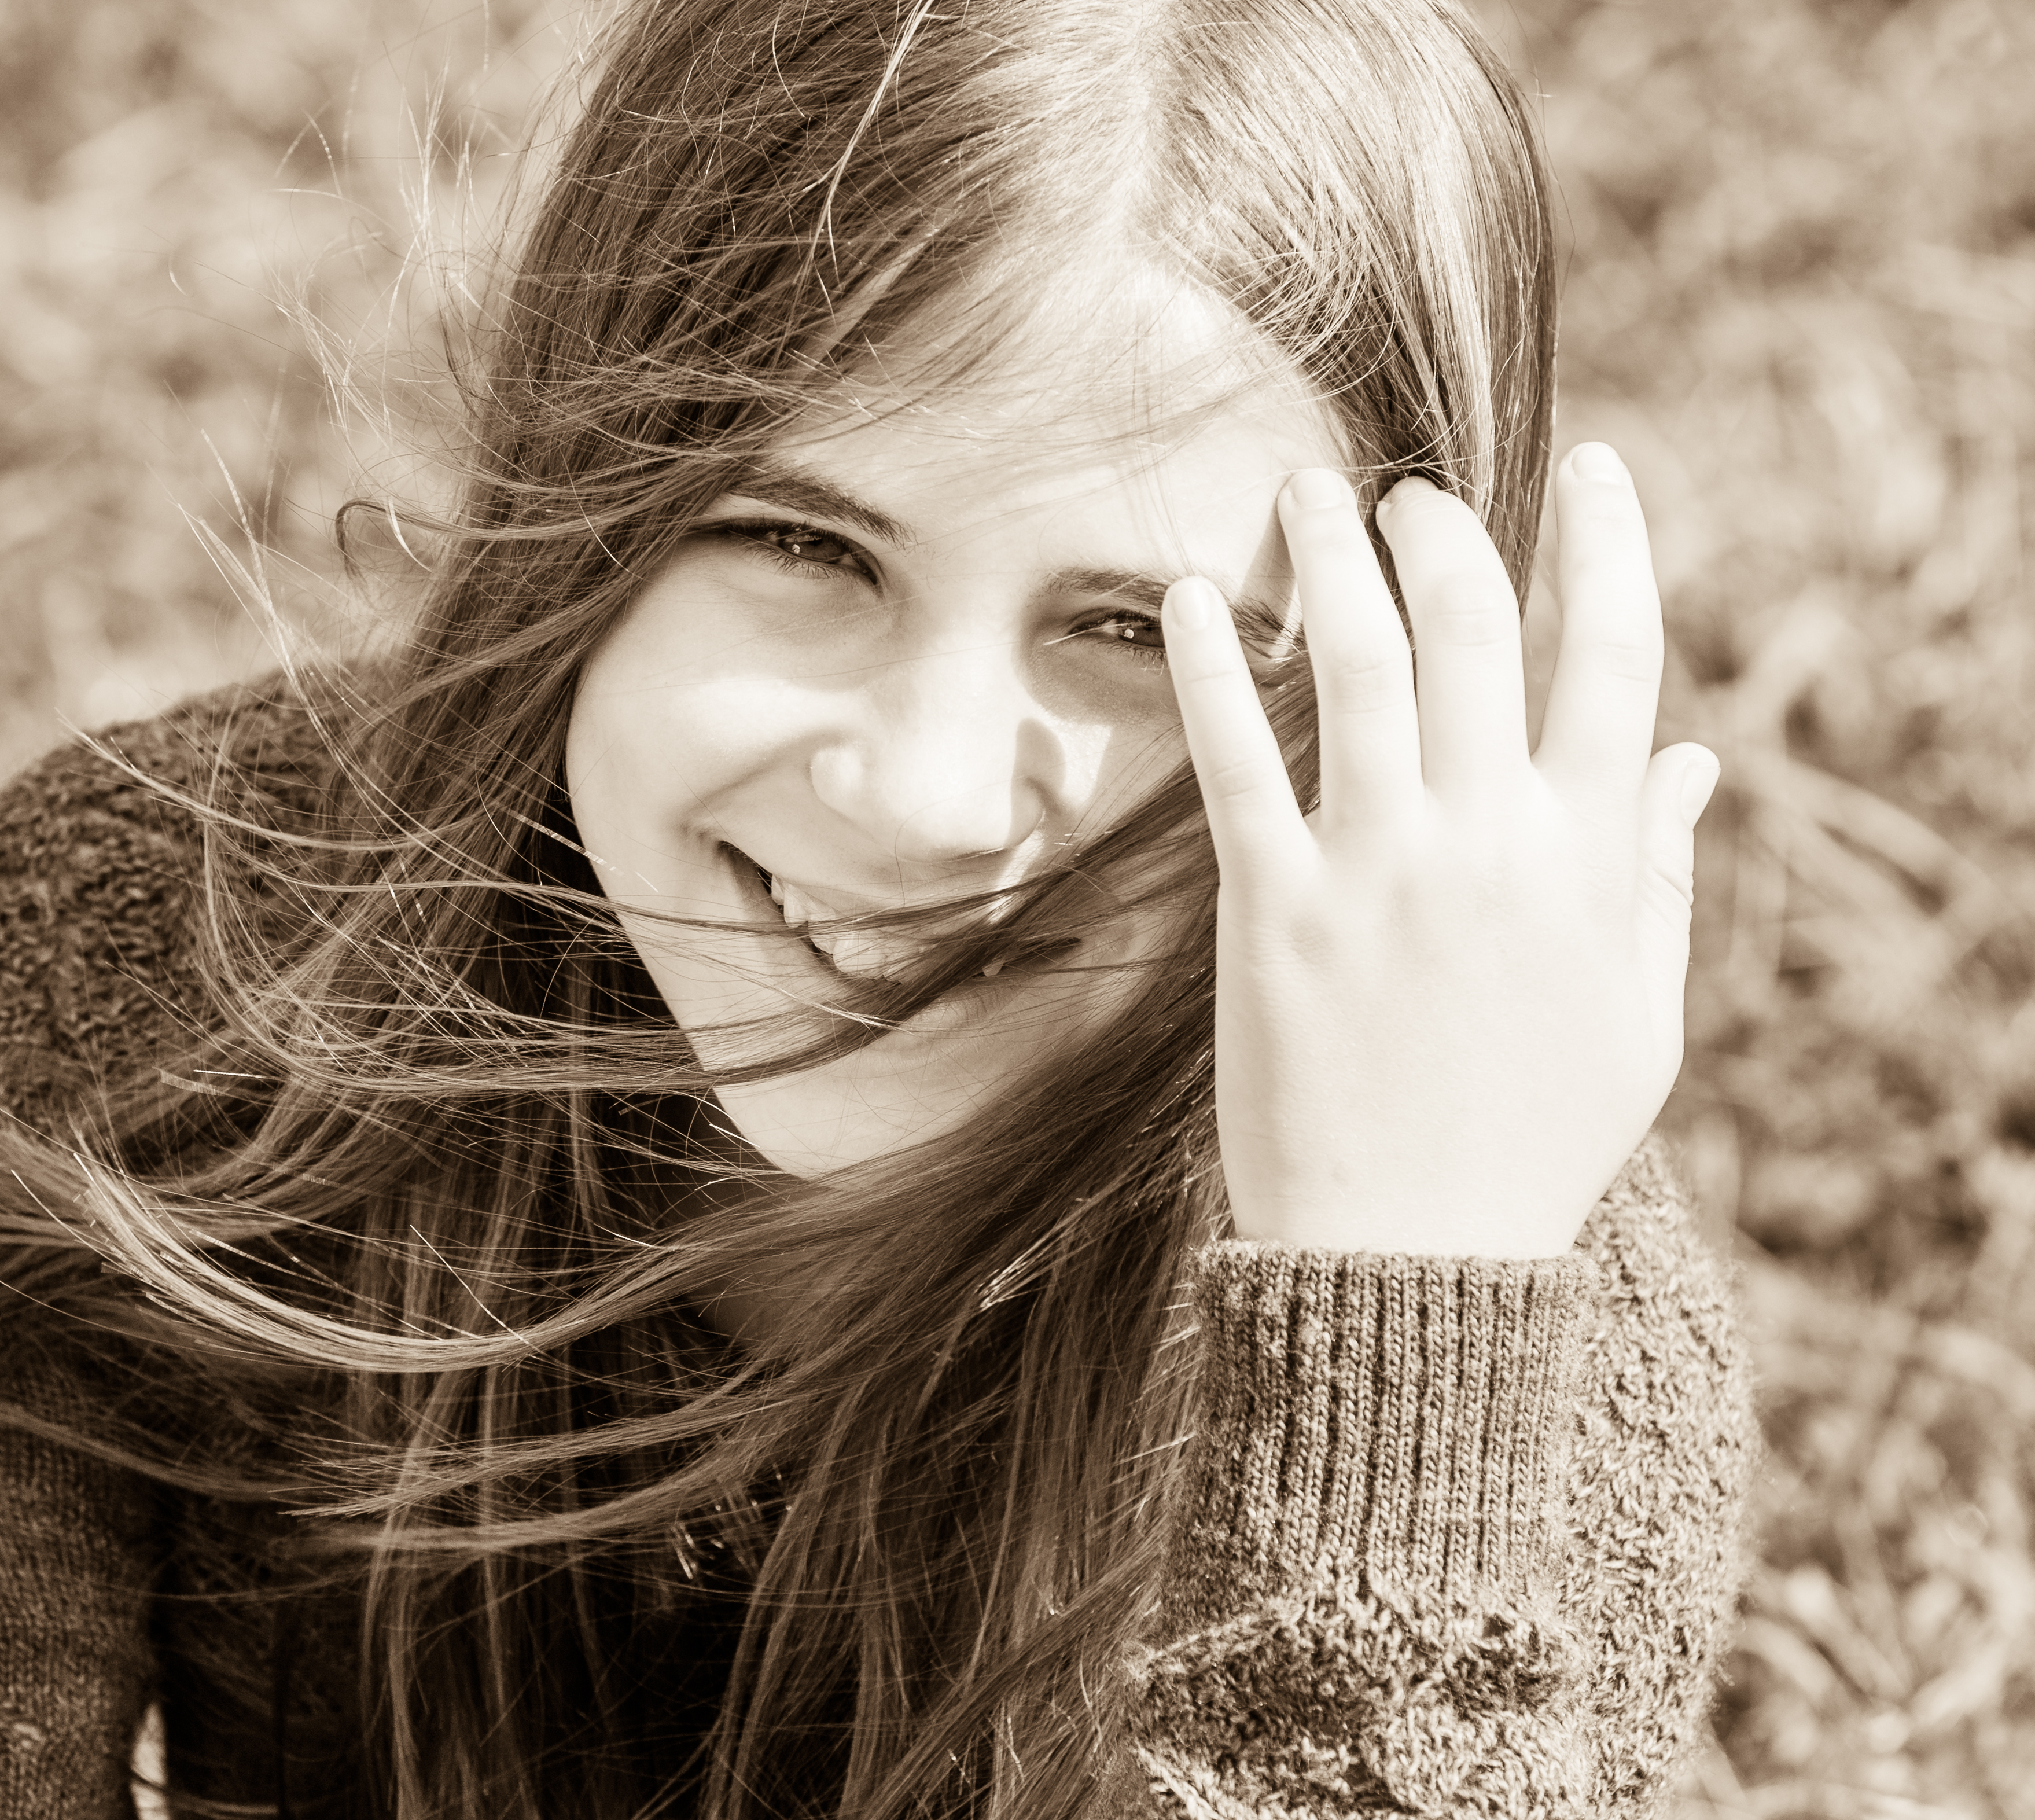 a cute young girl photographed in October 2014, picture 9, black and white